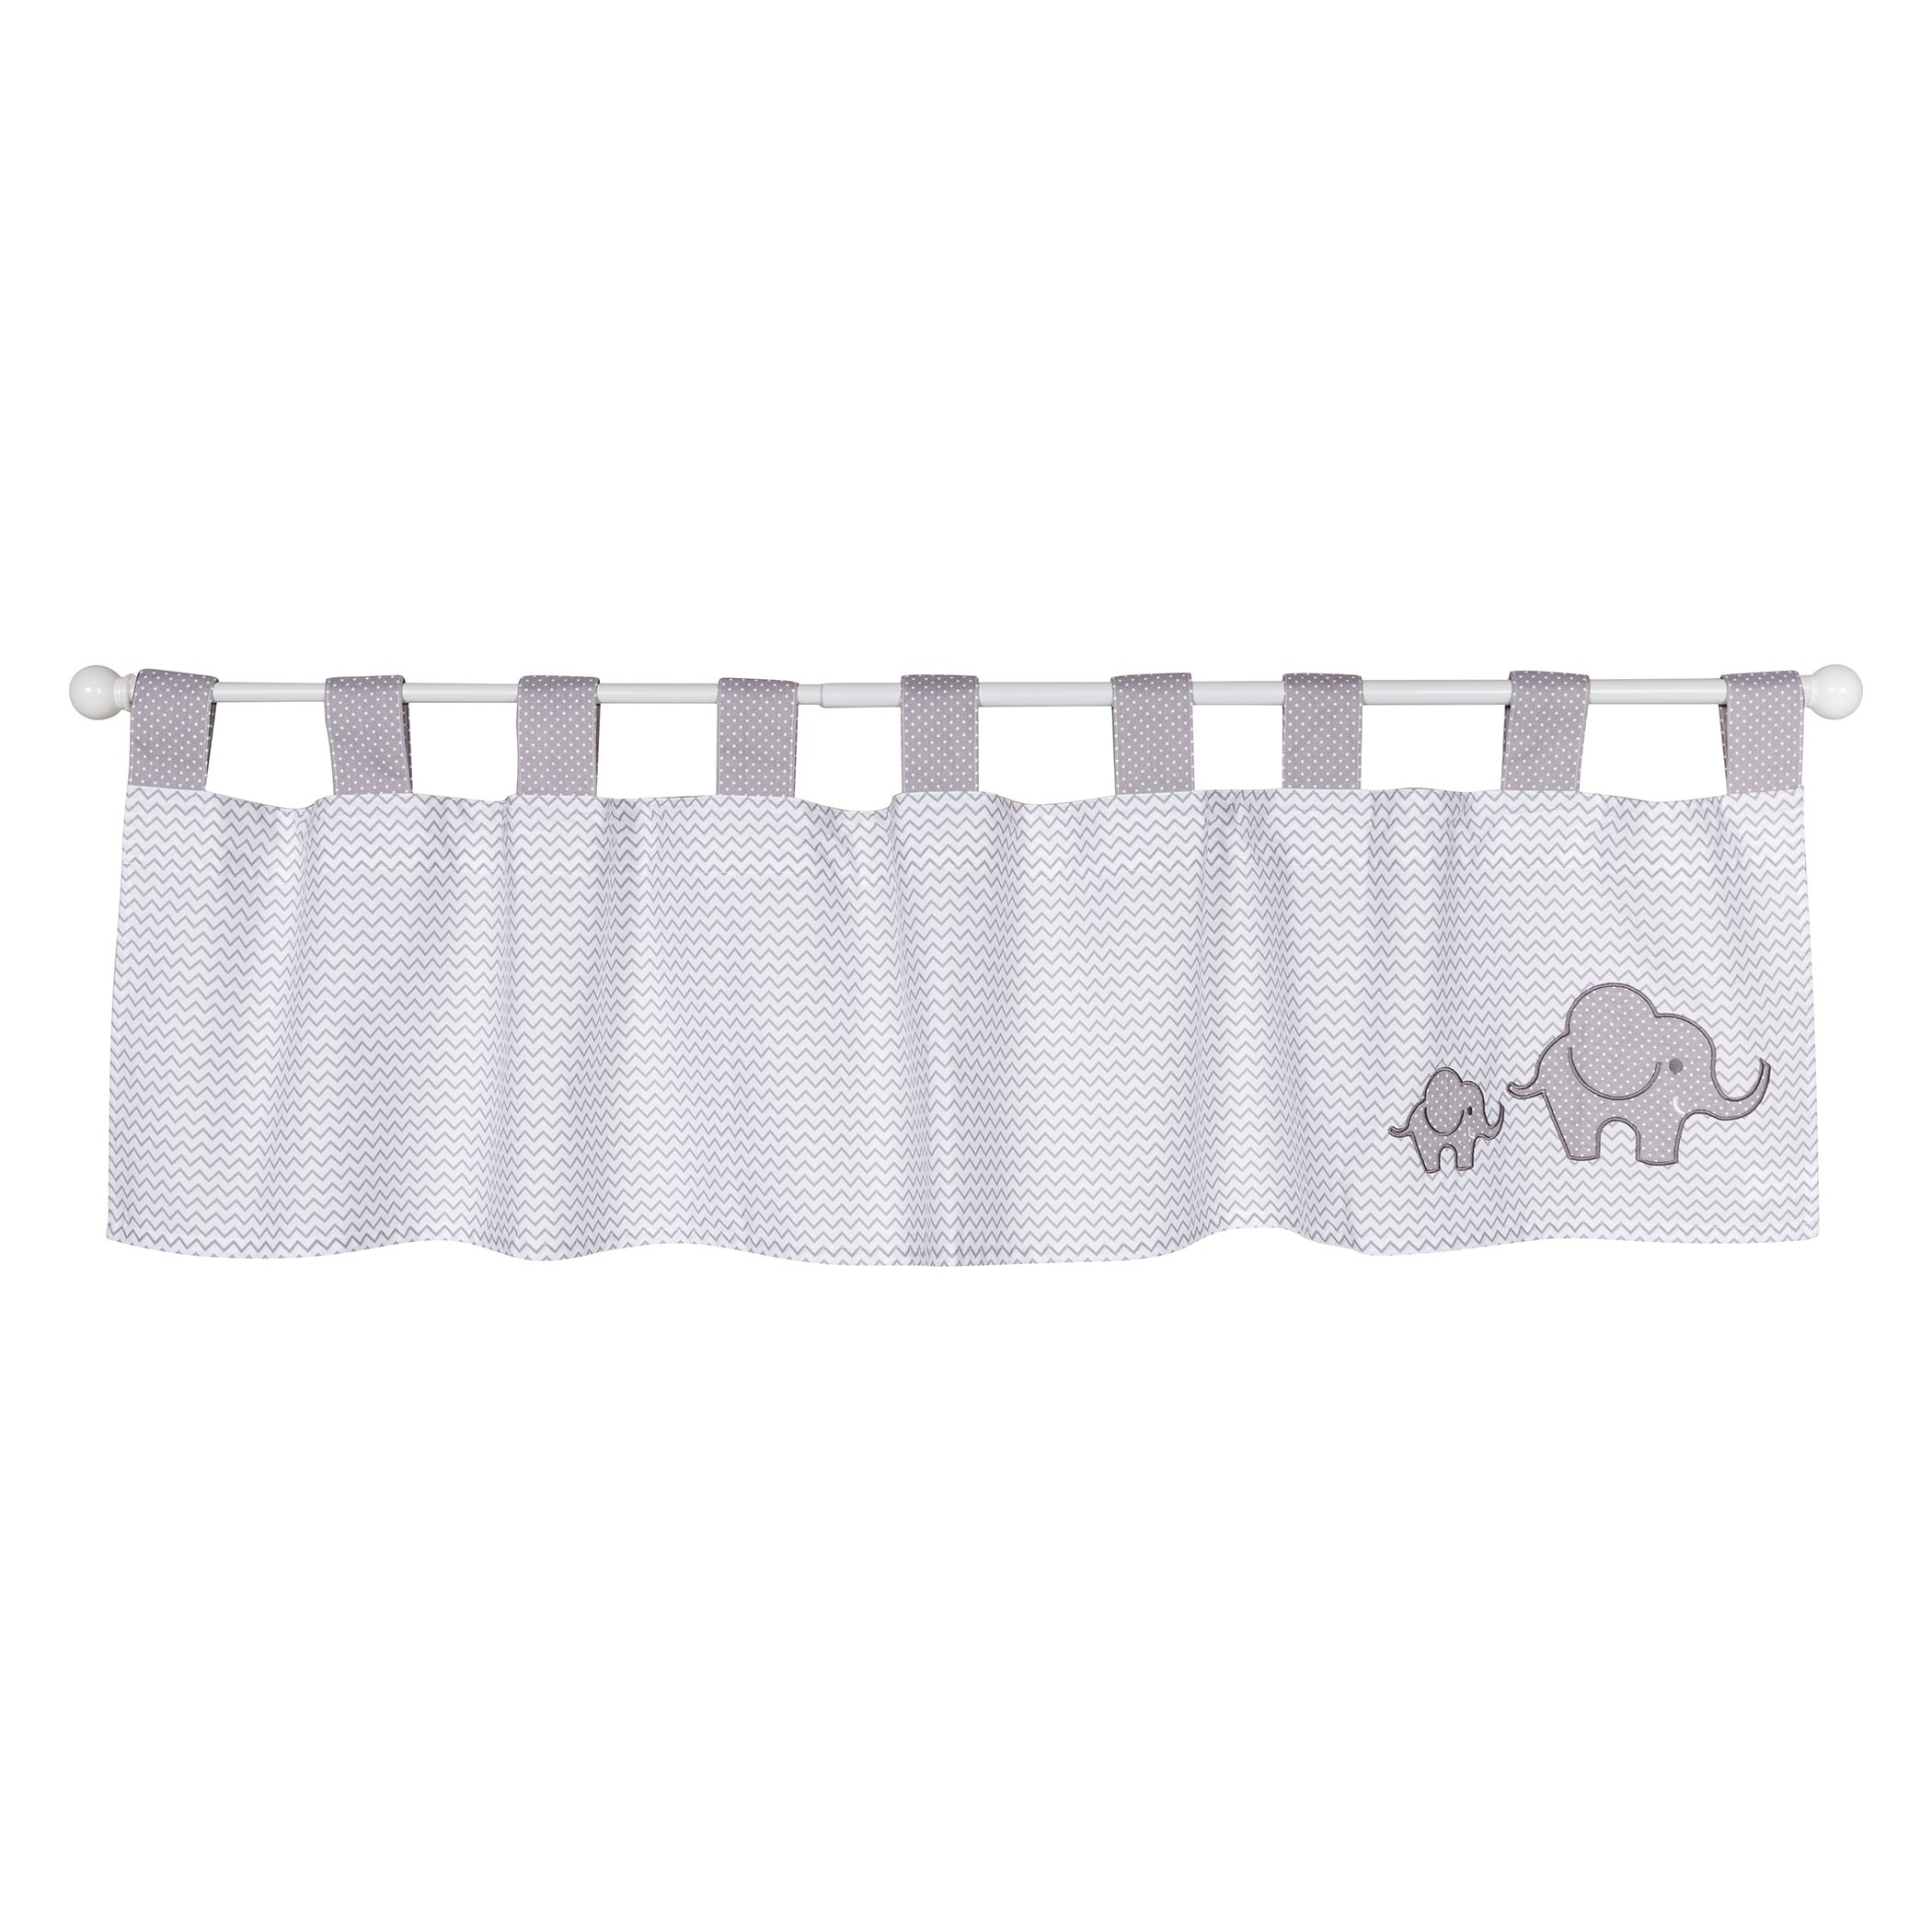 Trend Lab Safari Chevron Window Valance by Trend Lab